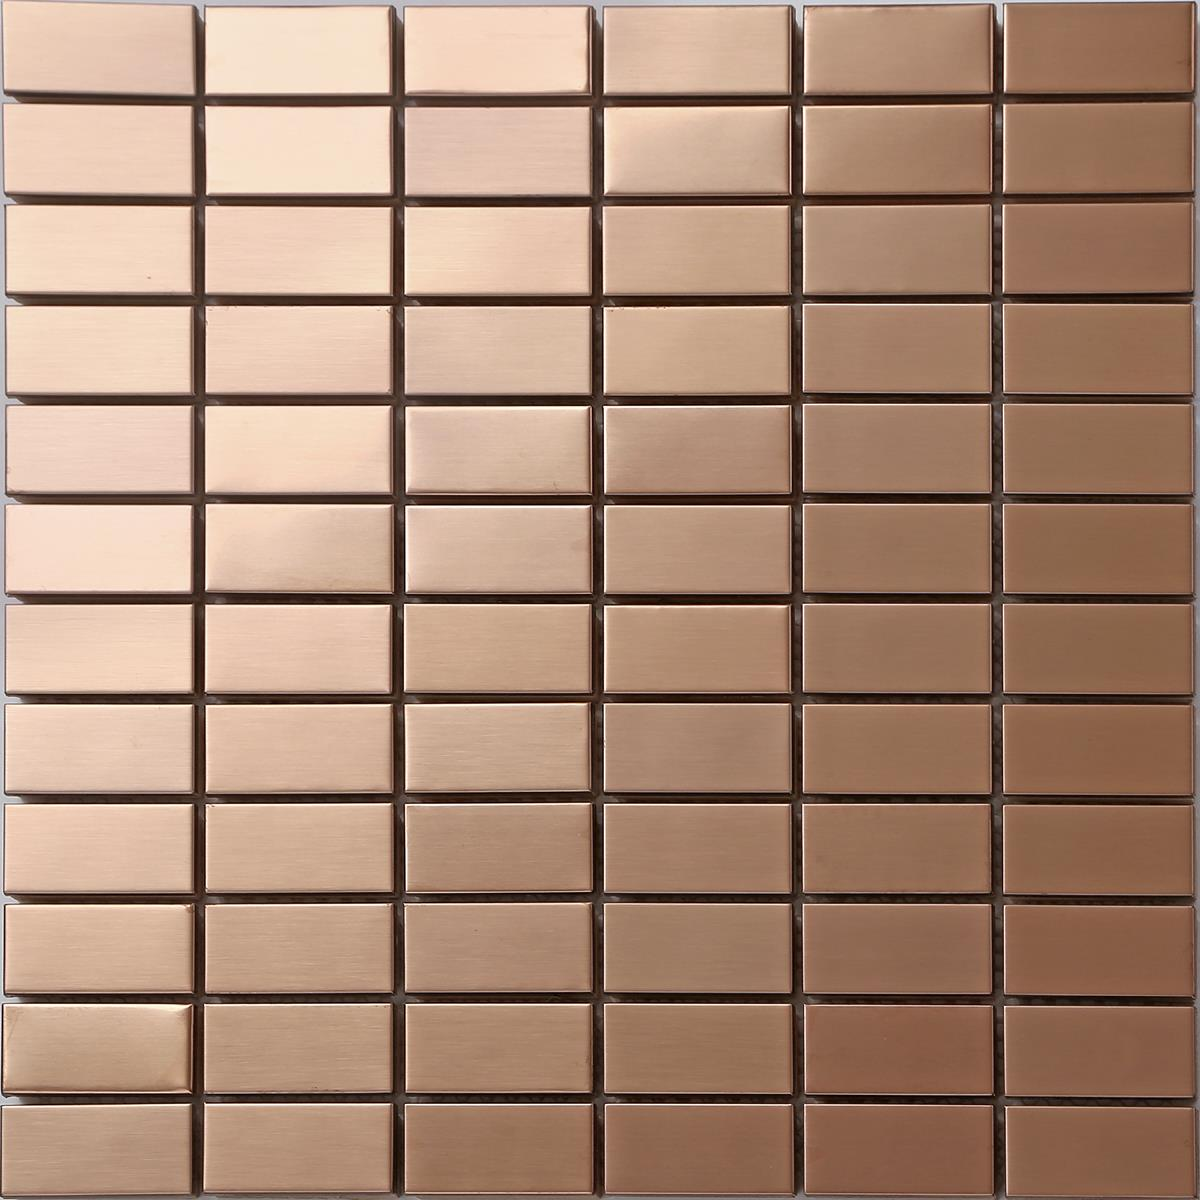 Image Is Loading 1 Sq M Copper Effect Mosaic Wall Tiles